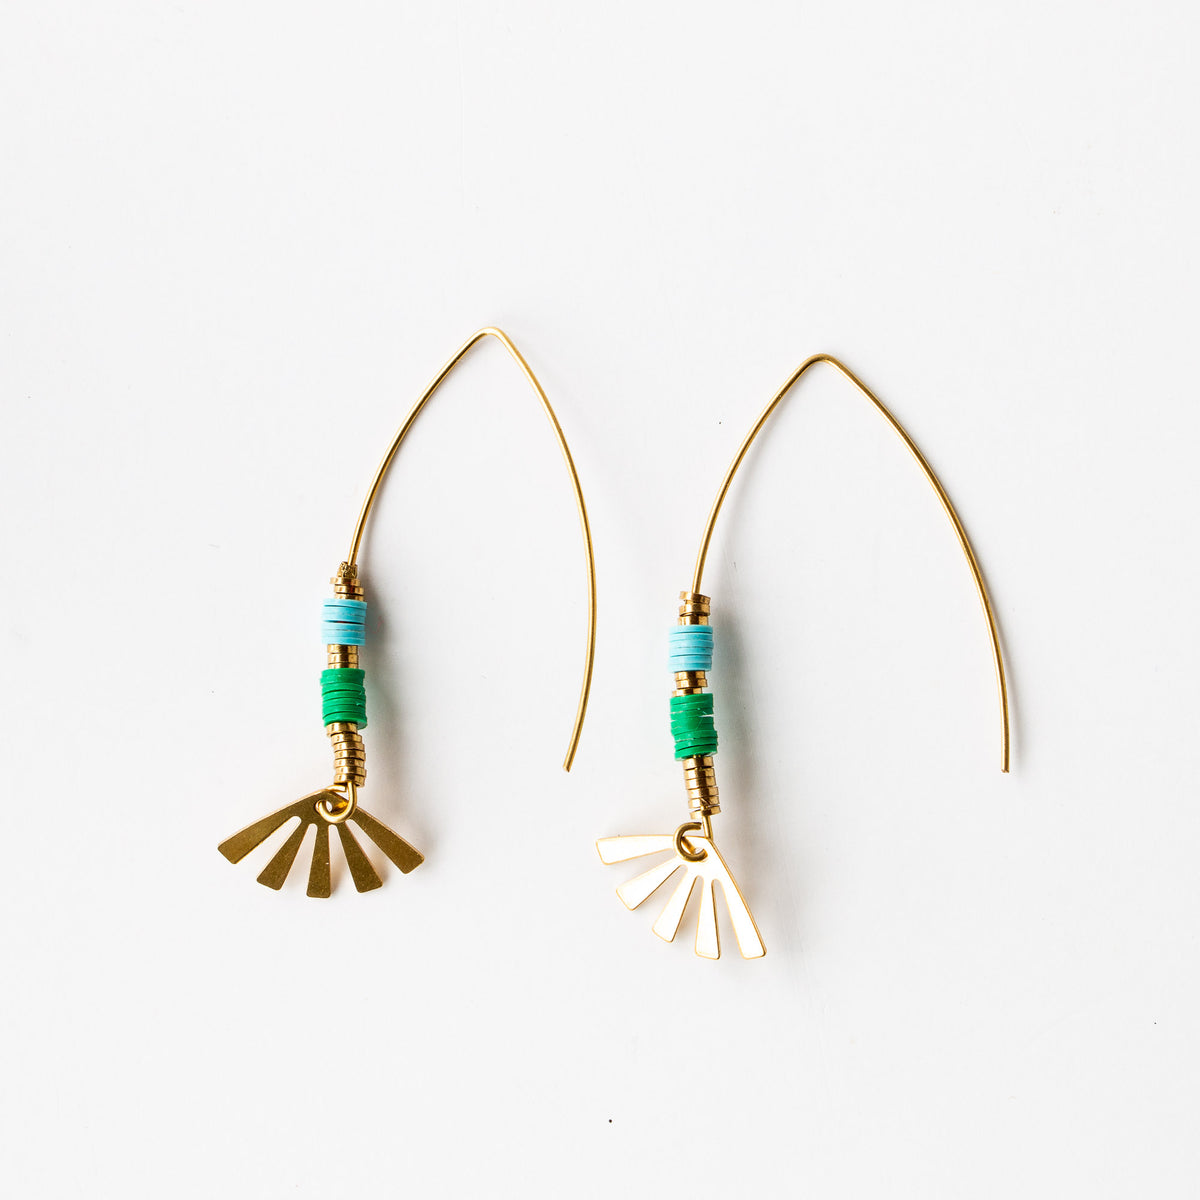 Andria Earrings - Handmade in Brass & African Vinyl - Sold by Chic & Basta